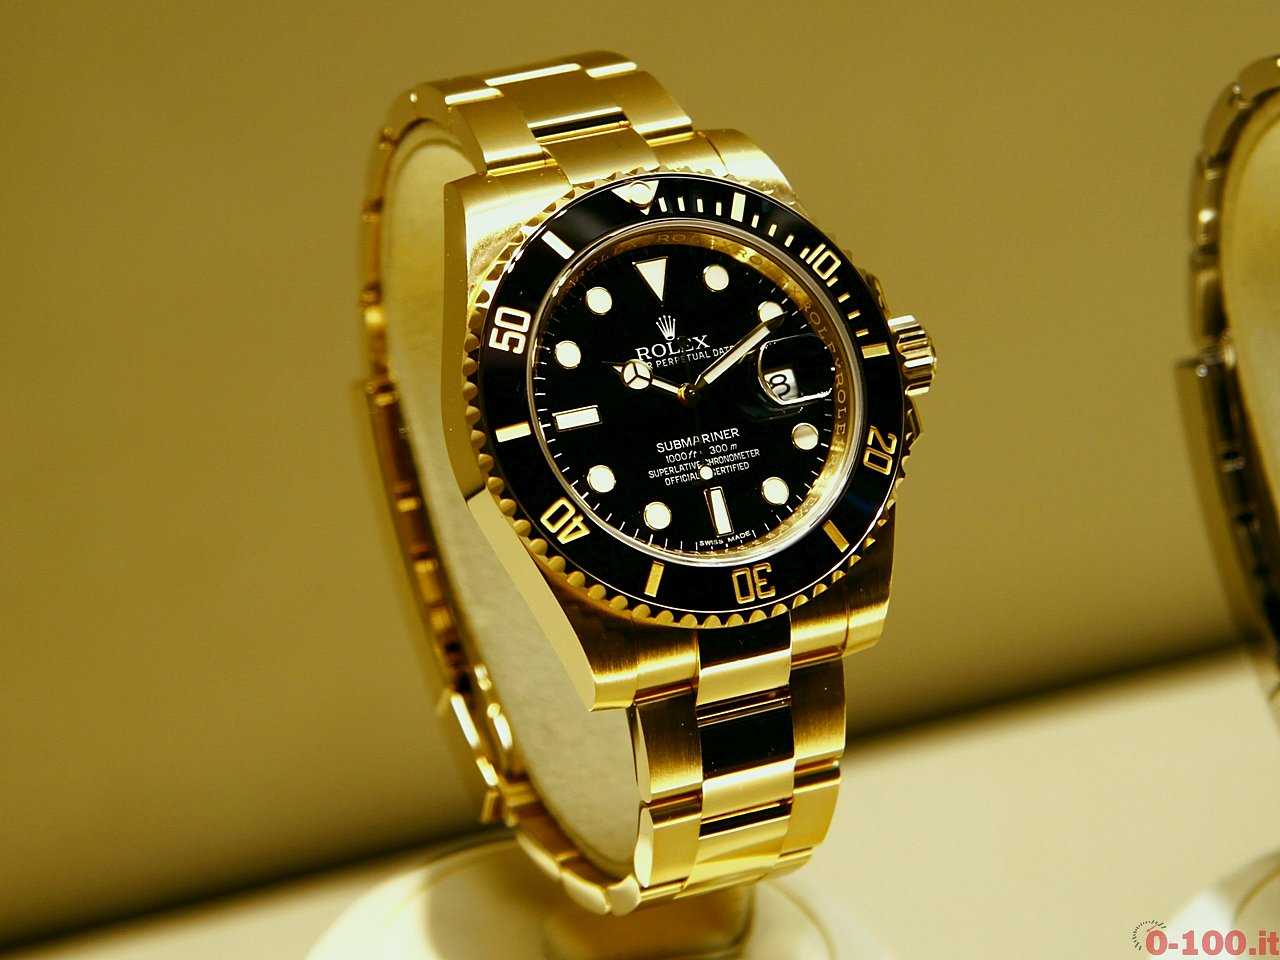 baselworld-2015_rolex-submariner-0-100_8